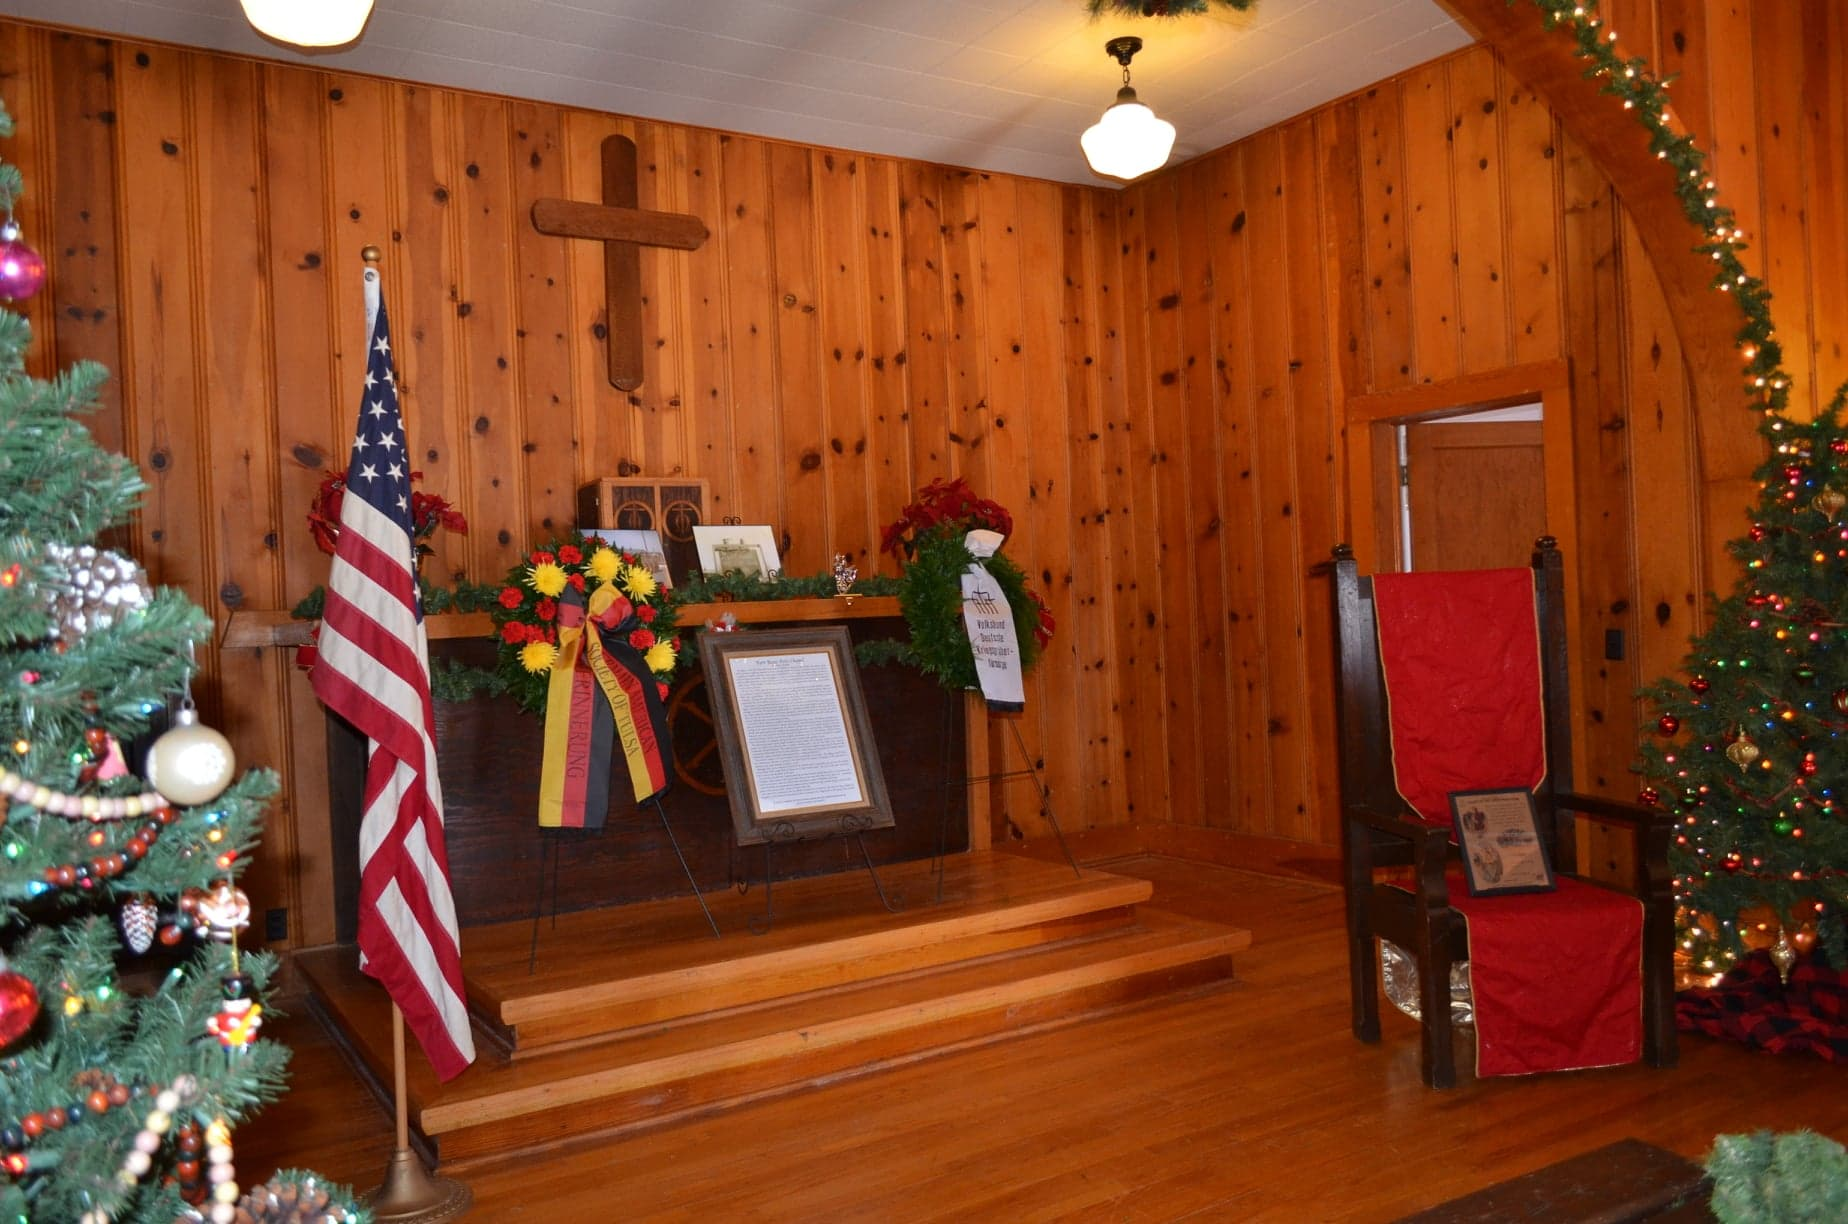 German Memorial Day 2019 Inside Chapel